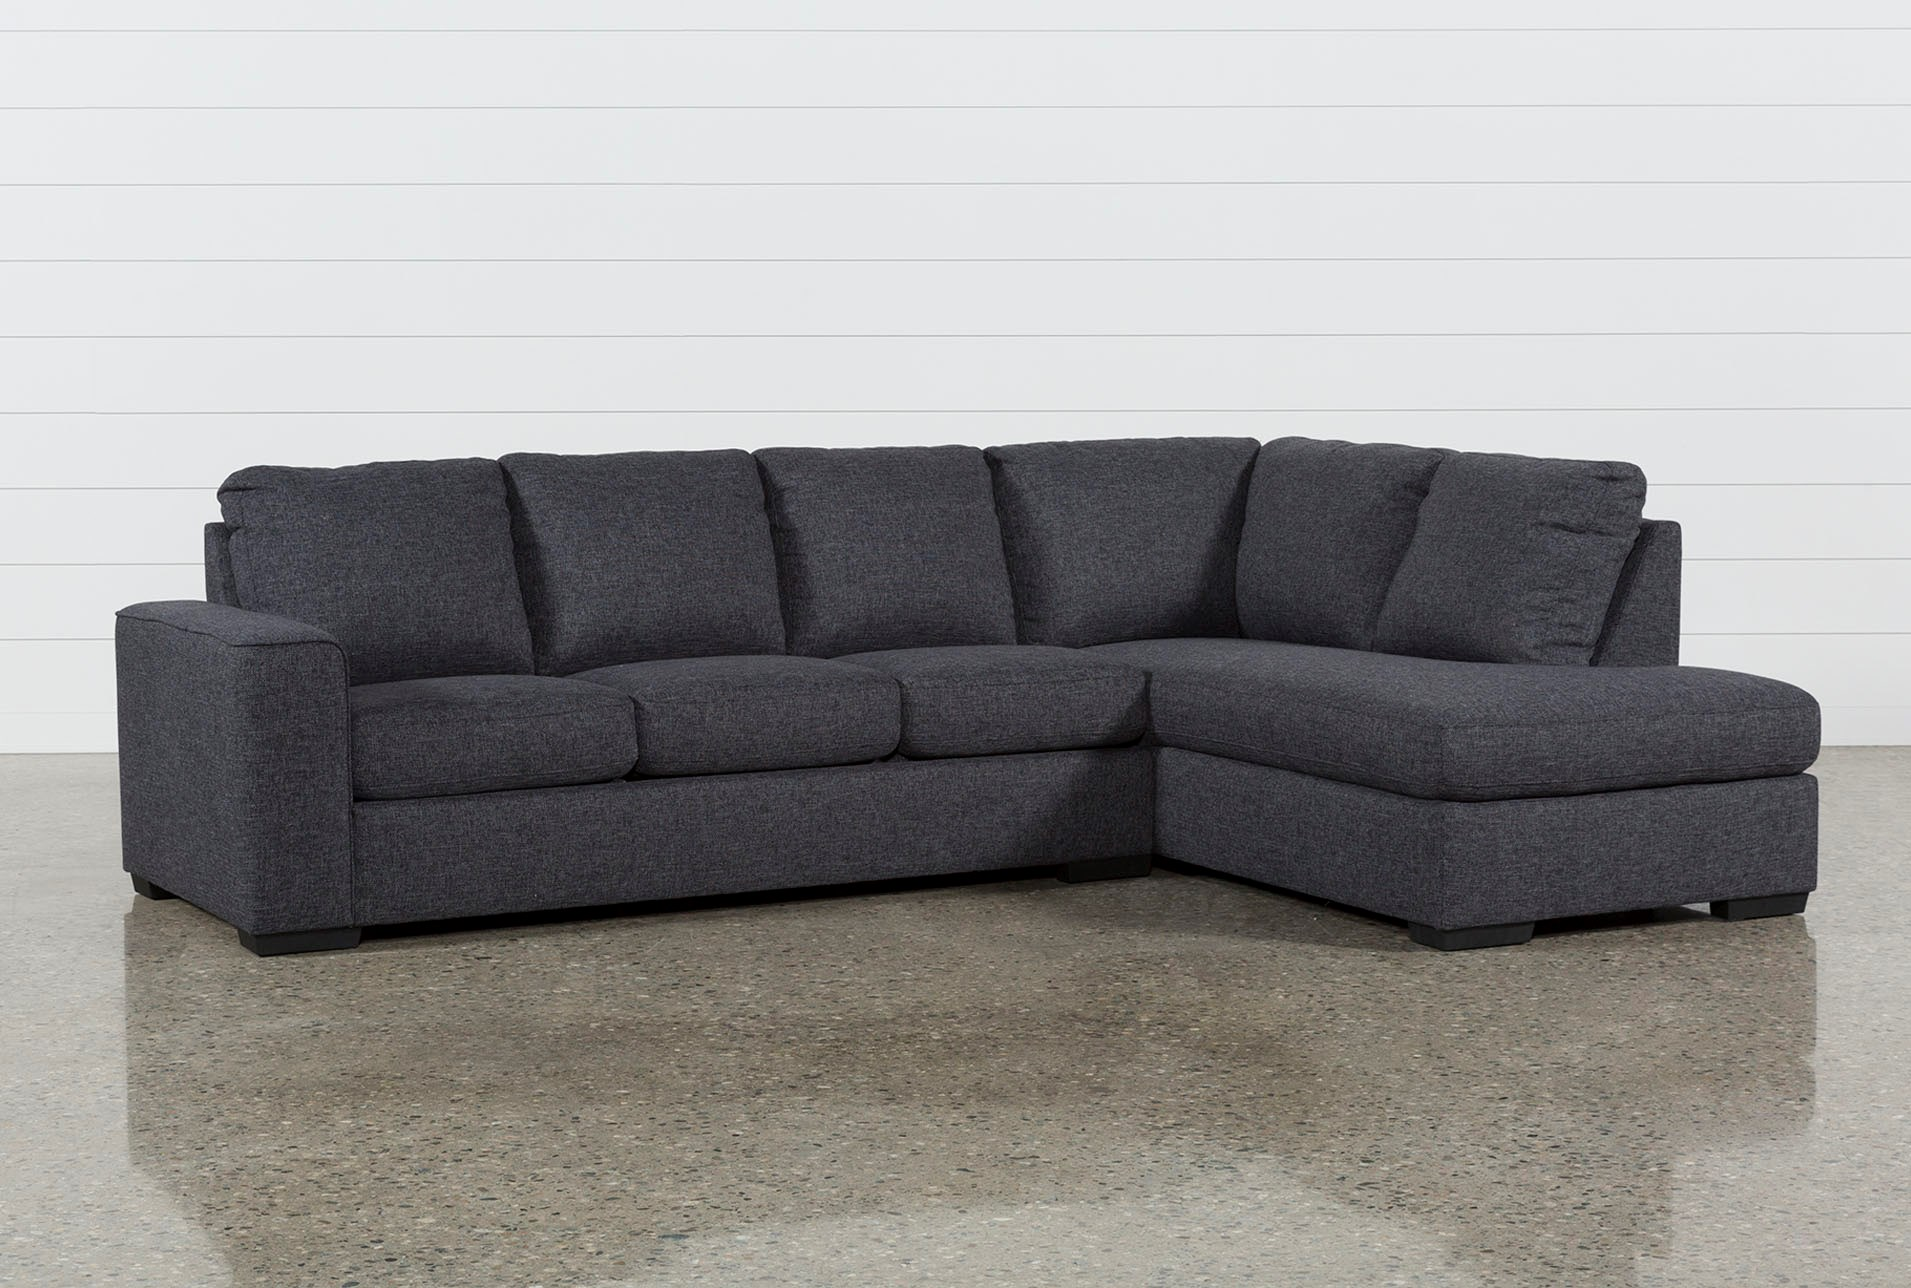 manstad pull bed out sofas sectional with storage ikea for cool from sofa